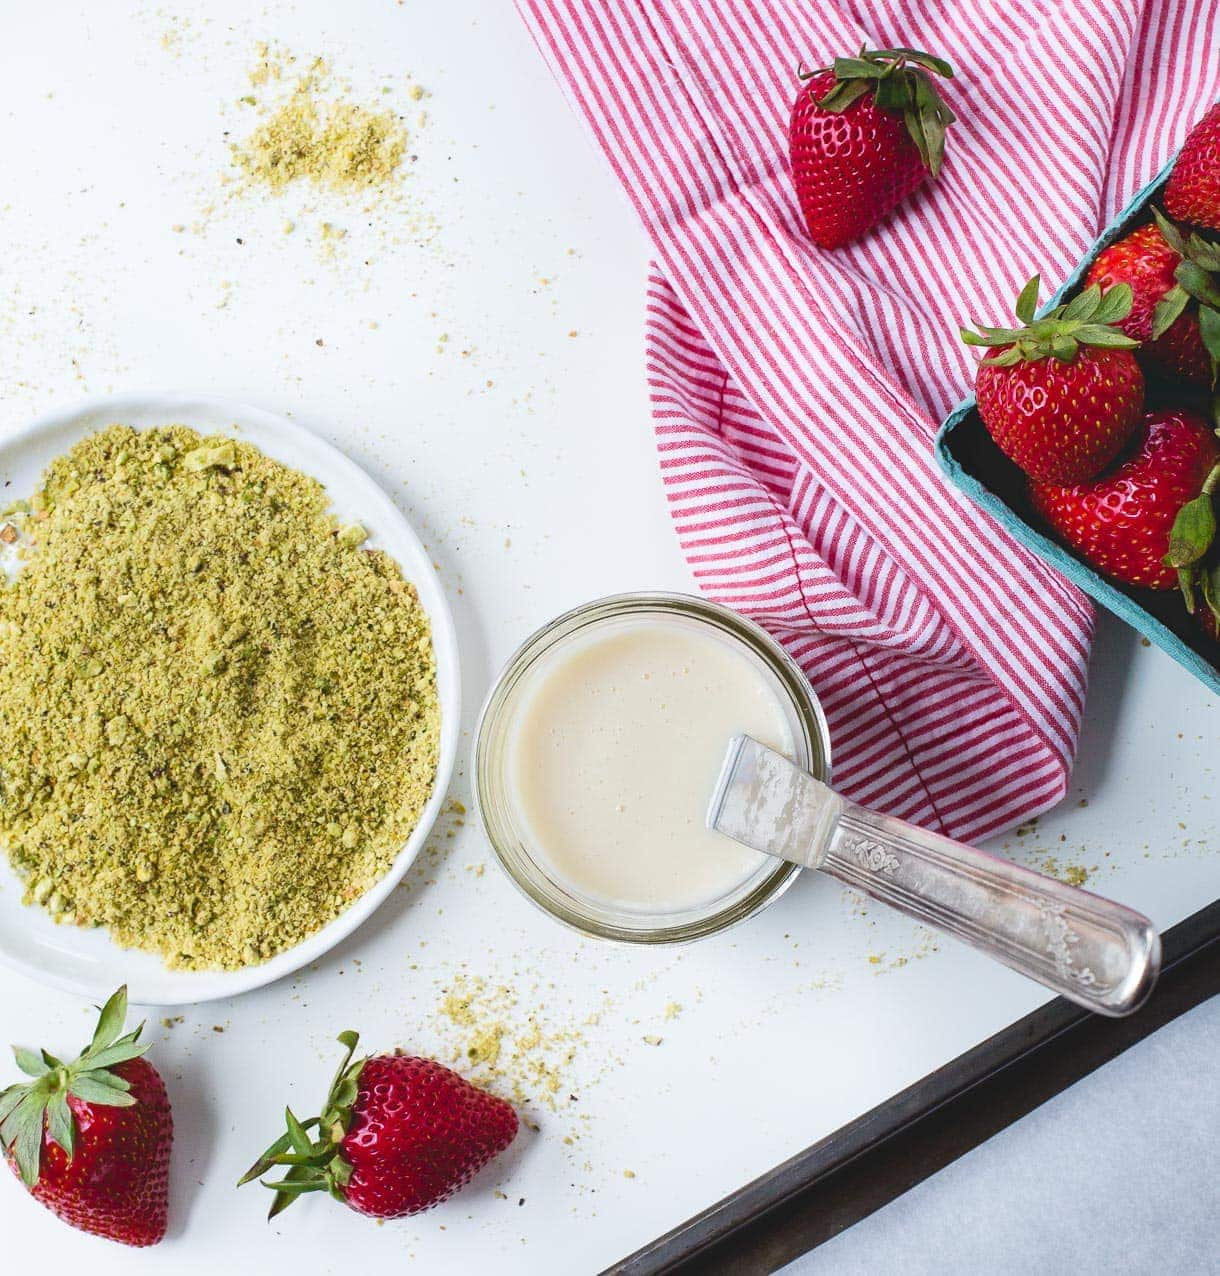 3 Ingredient Coconut Butter Dipped Strawberries with Pistachio Dust {paleo}